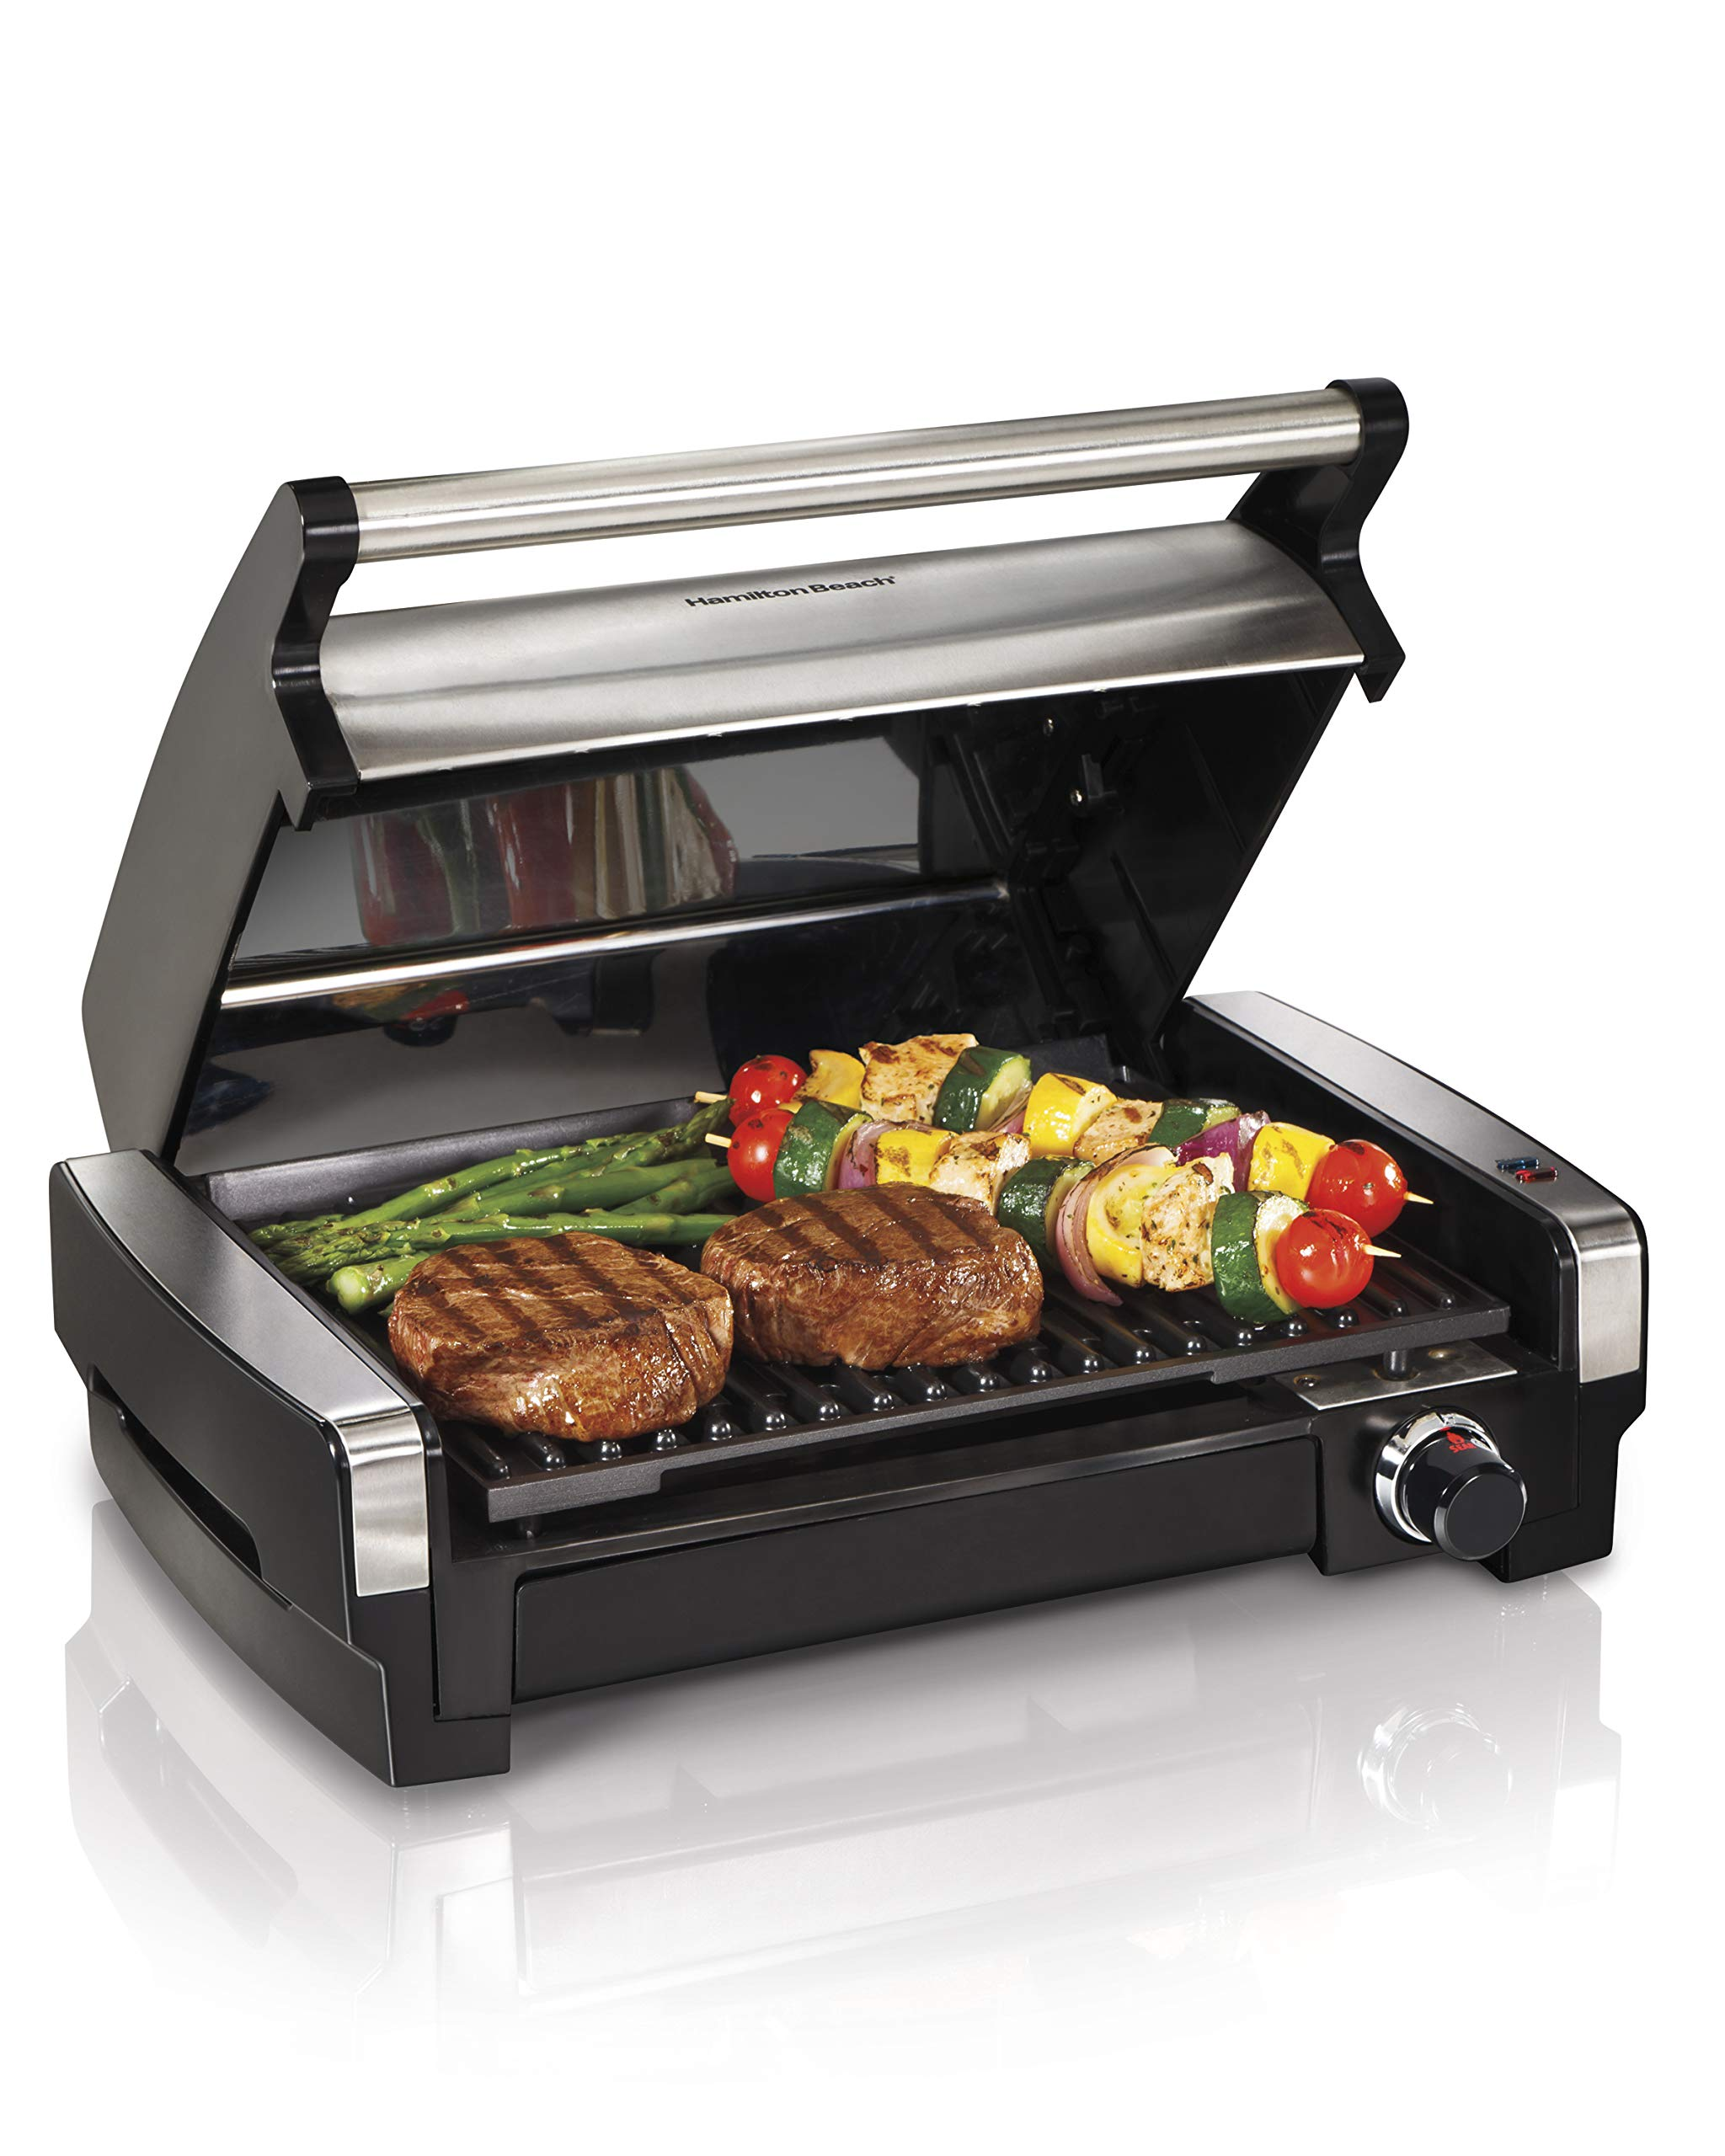 Hamilton Beach Electric Indoor Searing Grill Removable Easy-To-Clean Nonstick Plate, 6-Serving, Extra-Large Drip Tray, Stainless Steel (25360) by Hamilton Beach